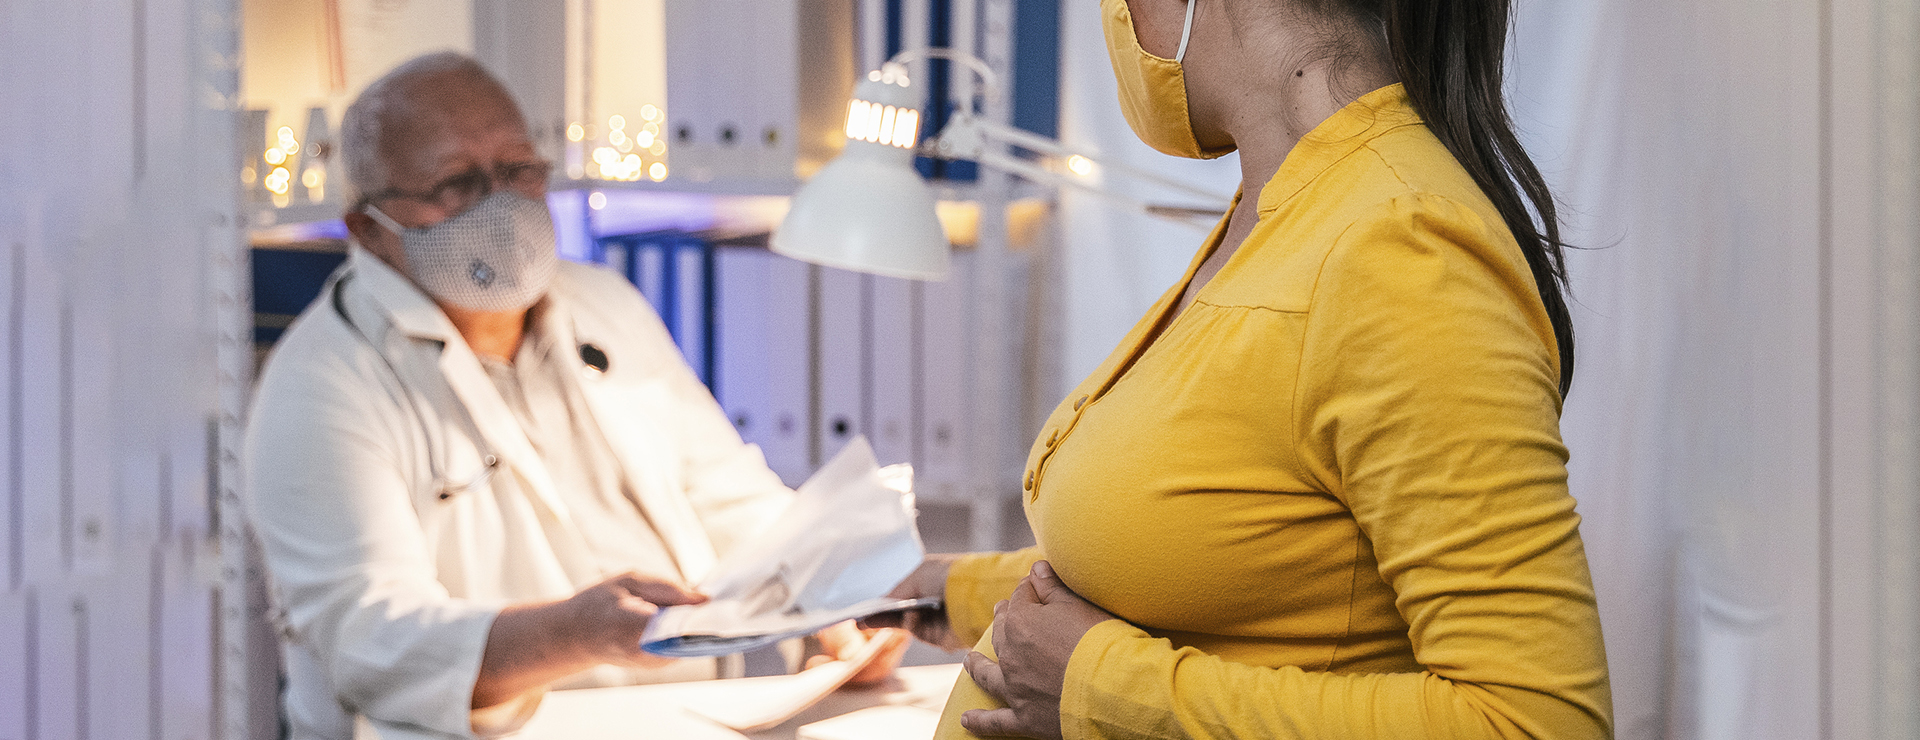 a pregnant woman and a doctor